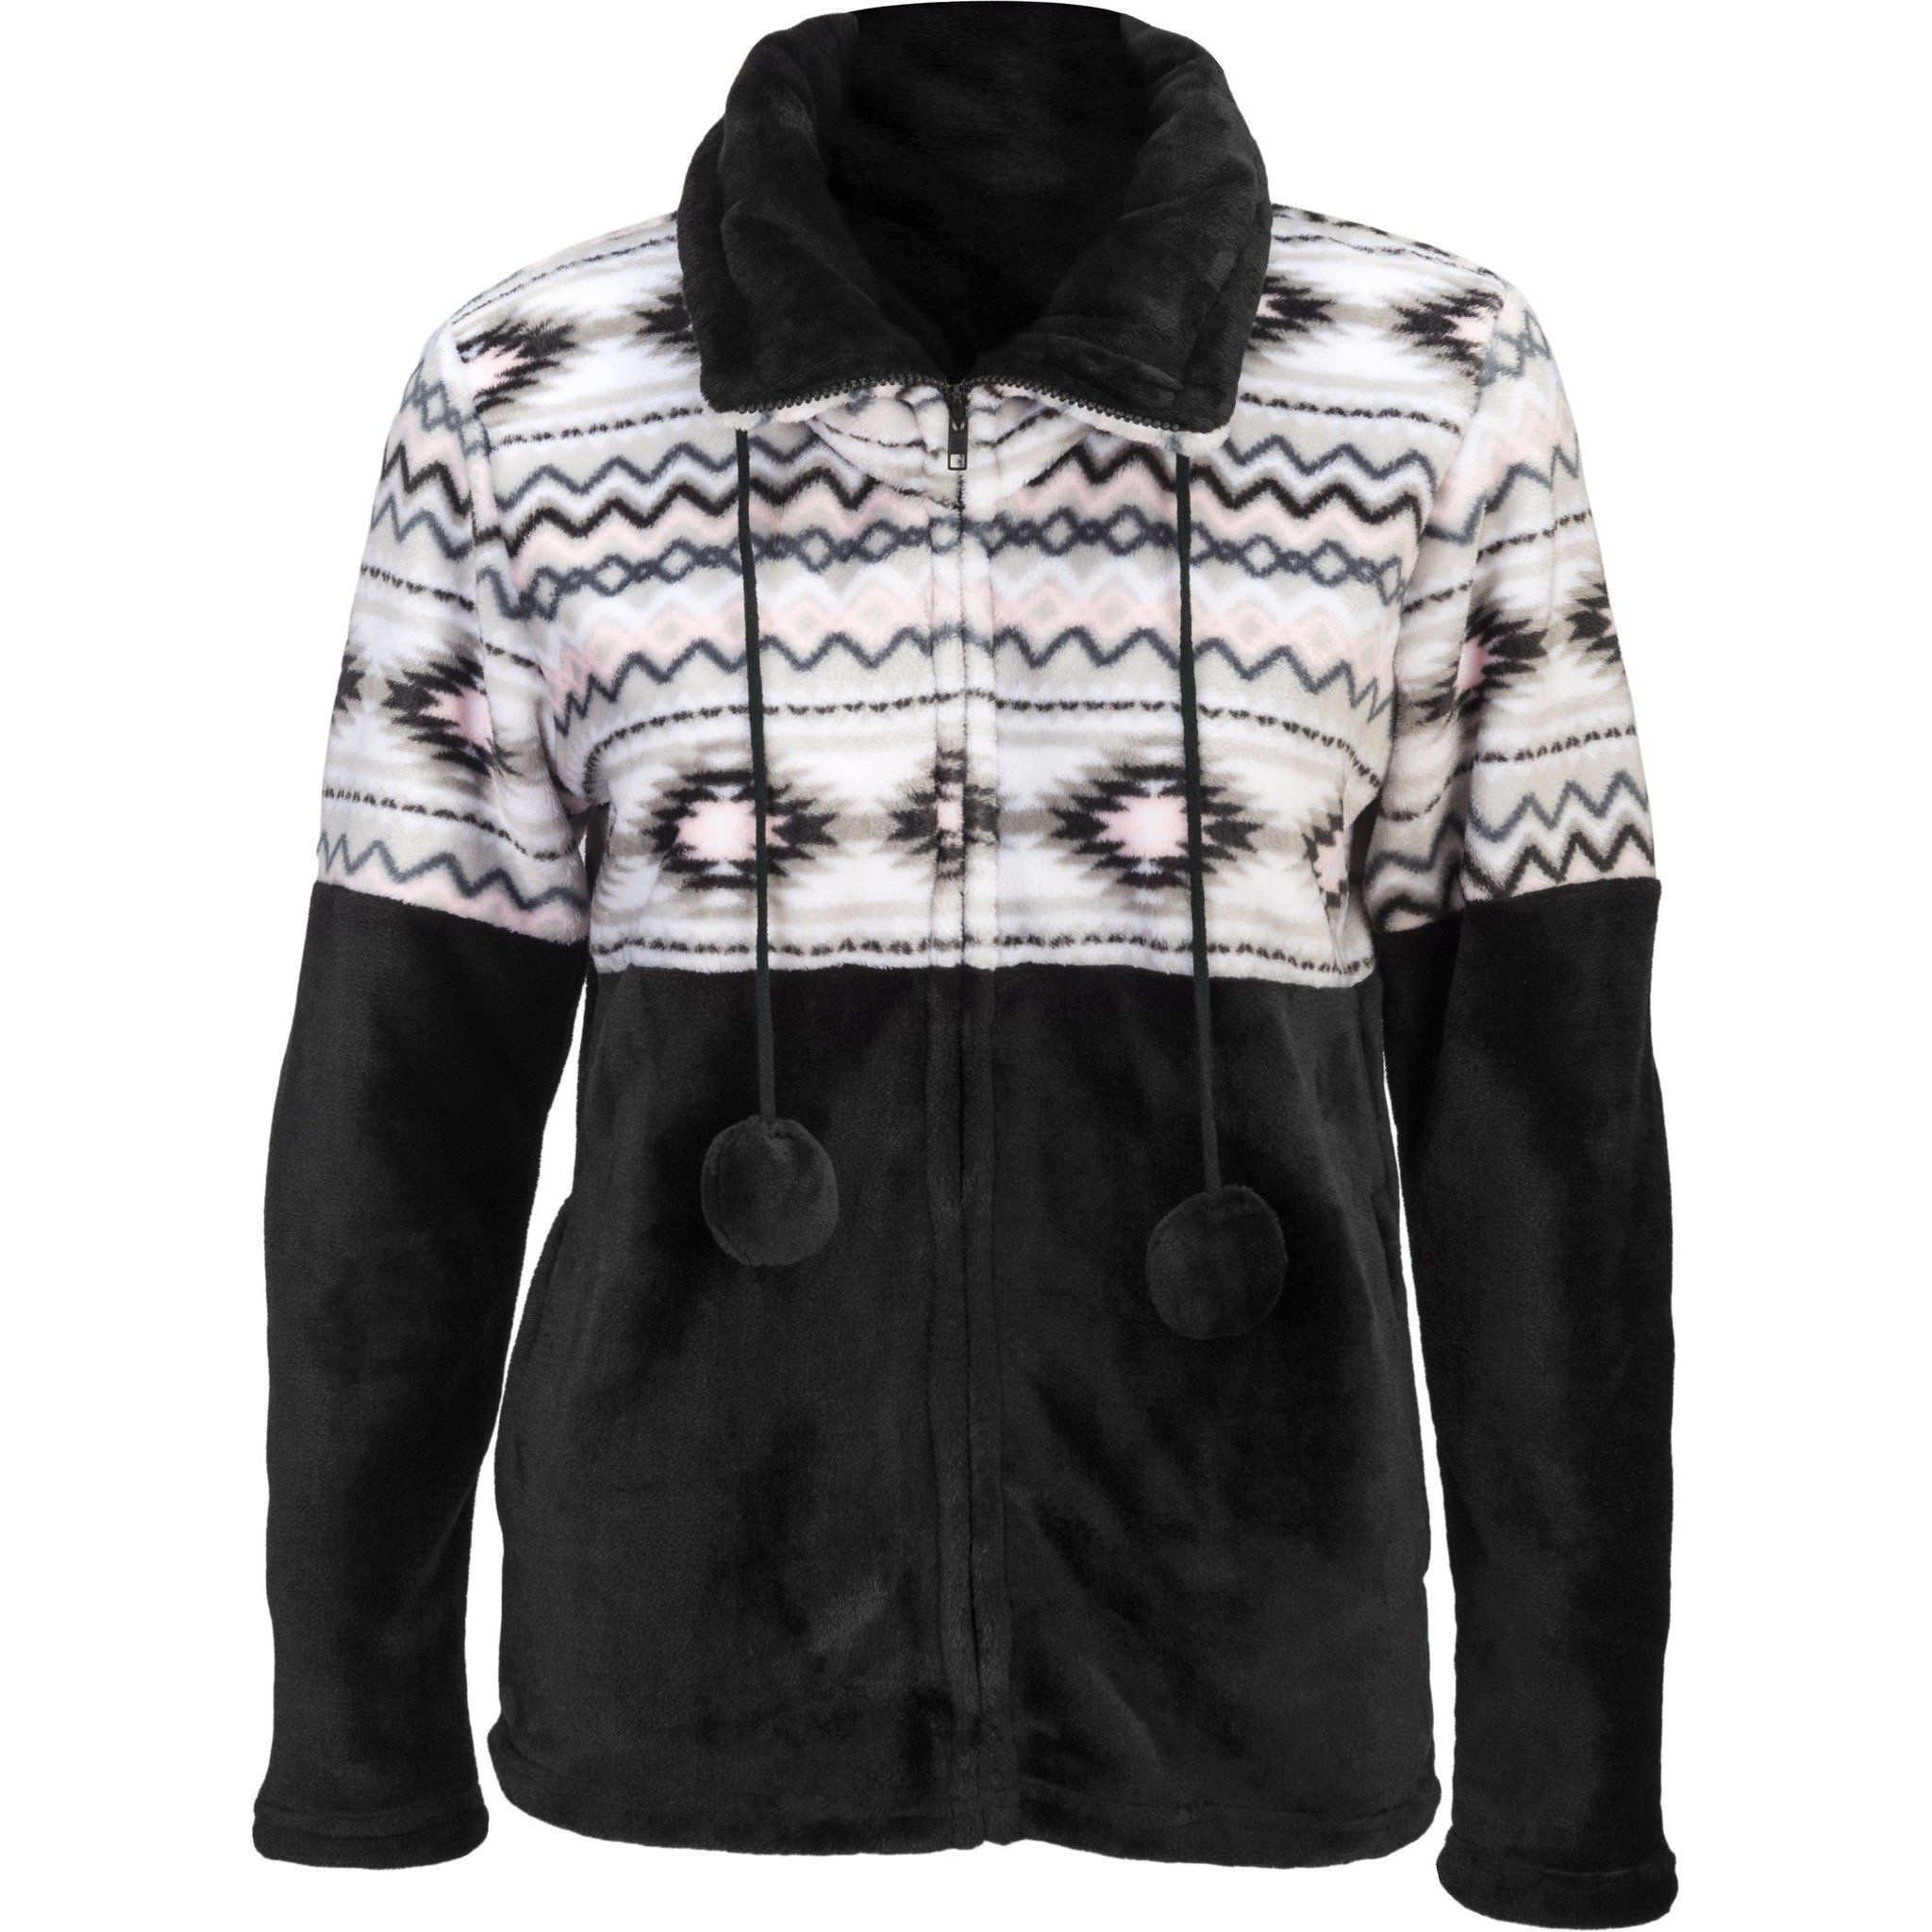 Flannel hoodie jacket women's  Womenus Aztec Flannel Plush Fleece Full Zip Jacket  Plush and Products